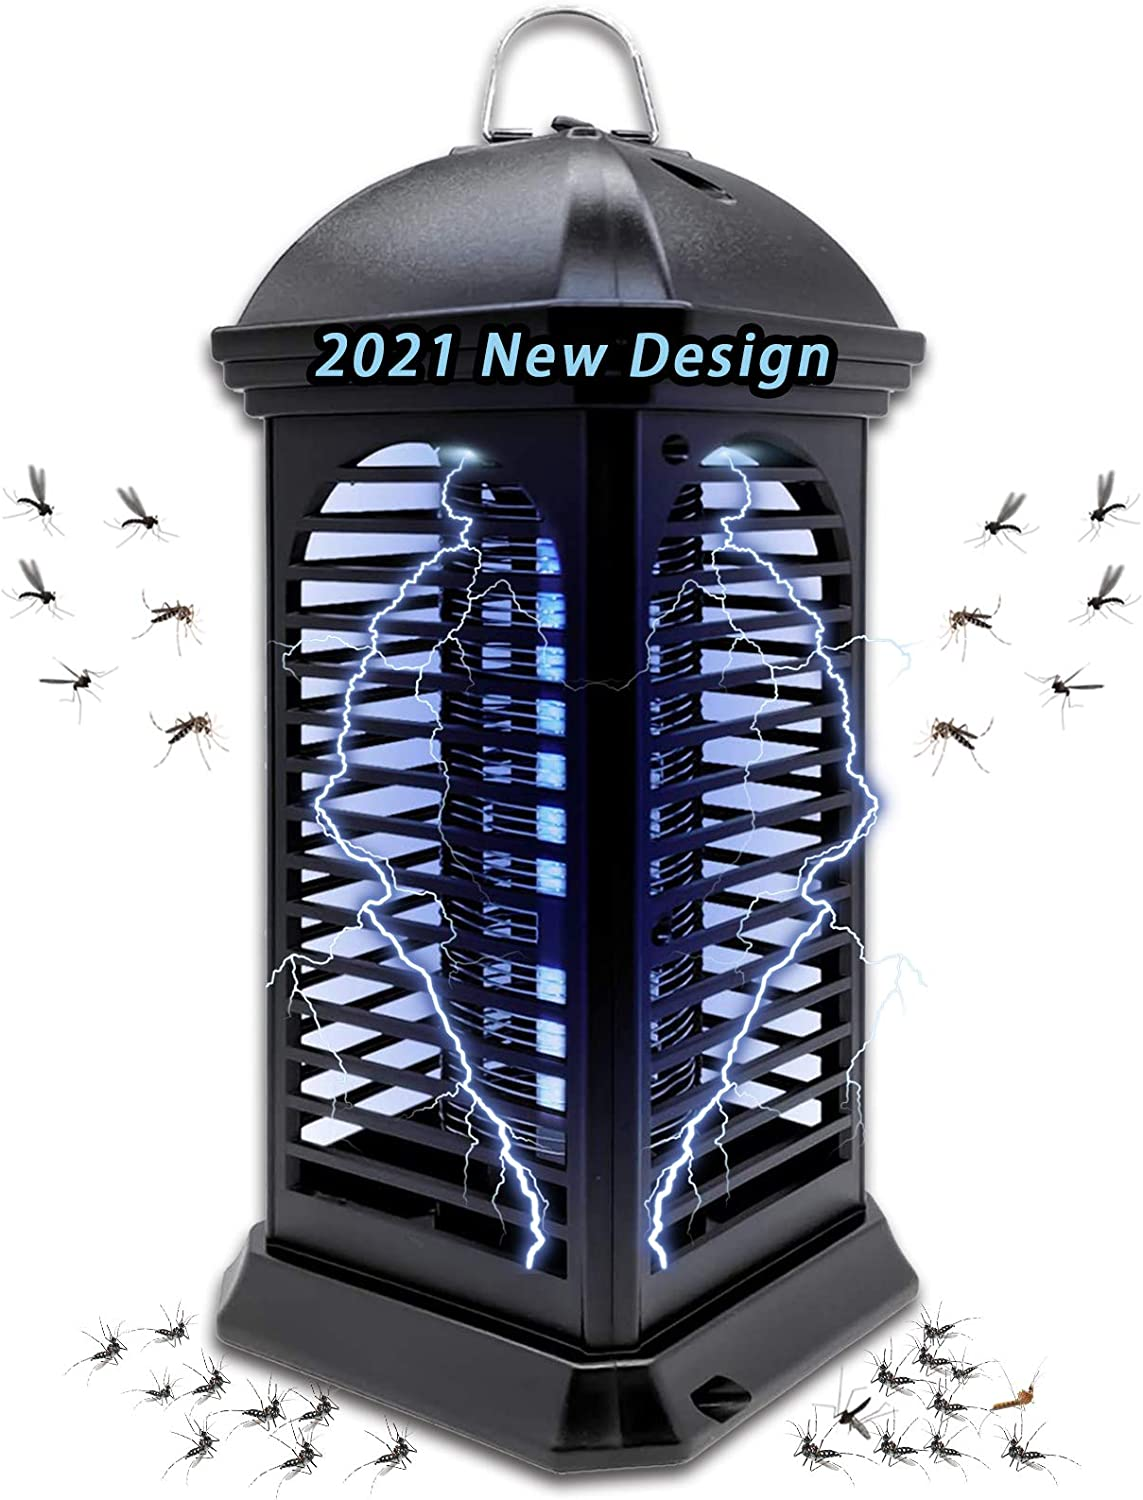 Bug Zapper,Powerful Insect Killer,Electronic Mosquito Zapper Killer - Fly Zapper Mosquito Zapper Electronic Insect Killer,with Uv Mosquito Lamp for Indoor,Home